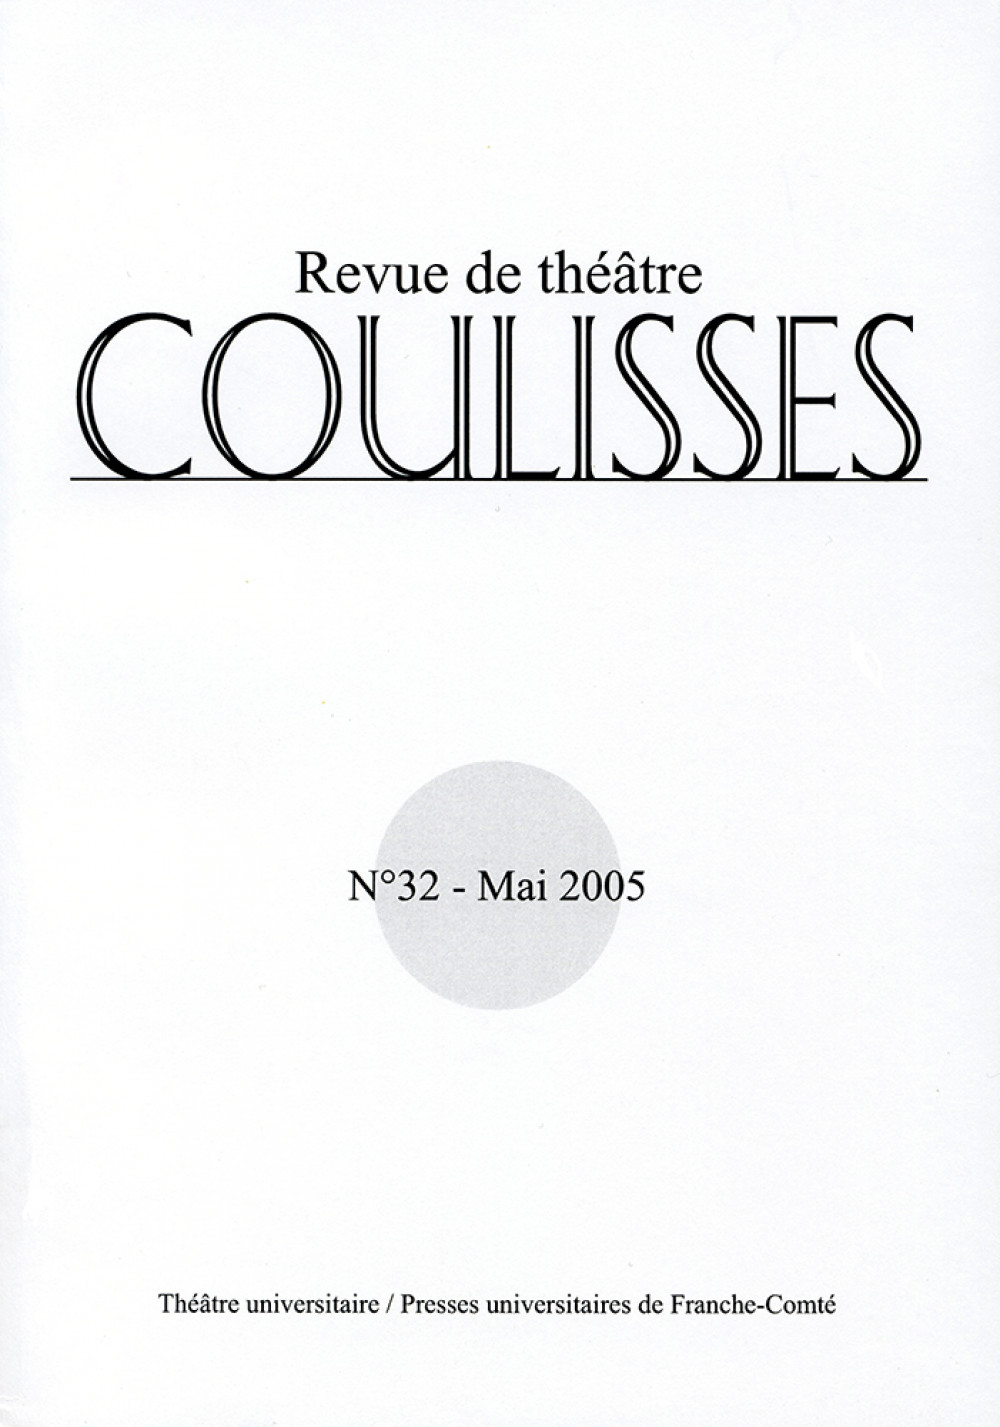 Coulisses 32